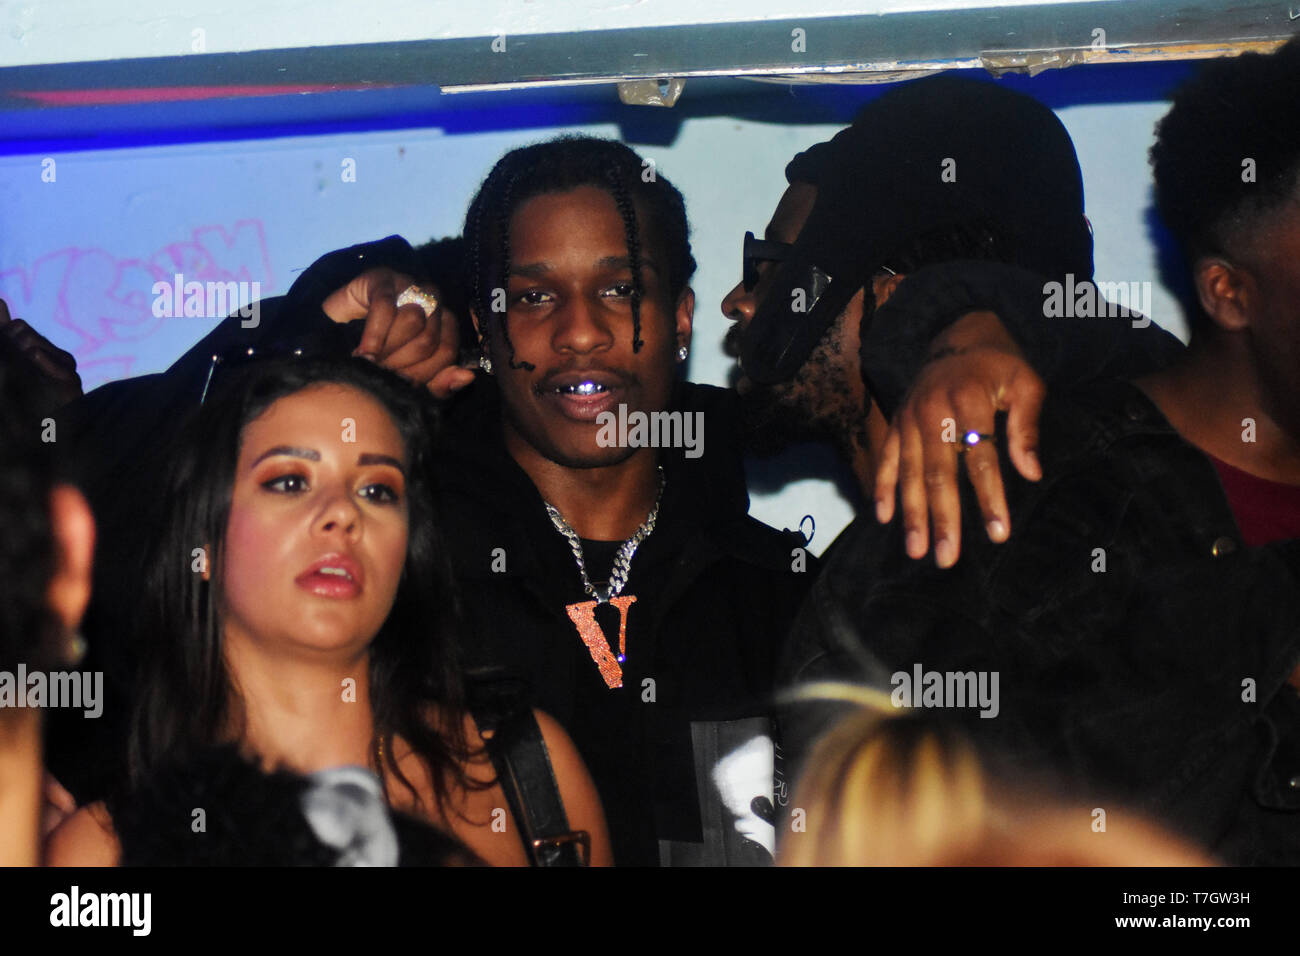 Multi talented American Rapper Director Actor and Fashion Model ASAP Rocky seen at a London Venue ahead of his performance at London's Finsbury Park for the infamous Wireless festival on the 5th of July. The top American recording artist is known for songs such as Praise the Lord from his last album titled Testing that featured UK artist Skepta and other top club bangers such as 'F**kin' Problems' ft. Drake, 2Chains and Kendrick Lamar back in 2013 and 'Every Day' Ft Rod Stewart, Mark Ronson and Migel is also known for his huge impact on the fashion world he even Collaborated with Selfridges - Stock Image